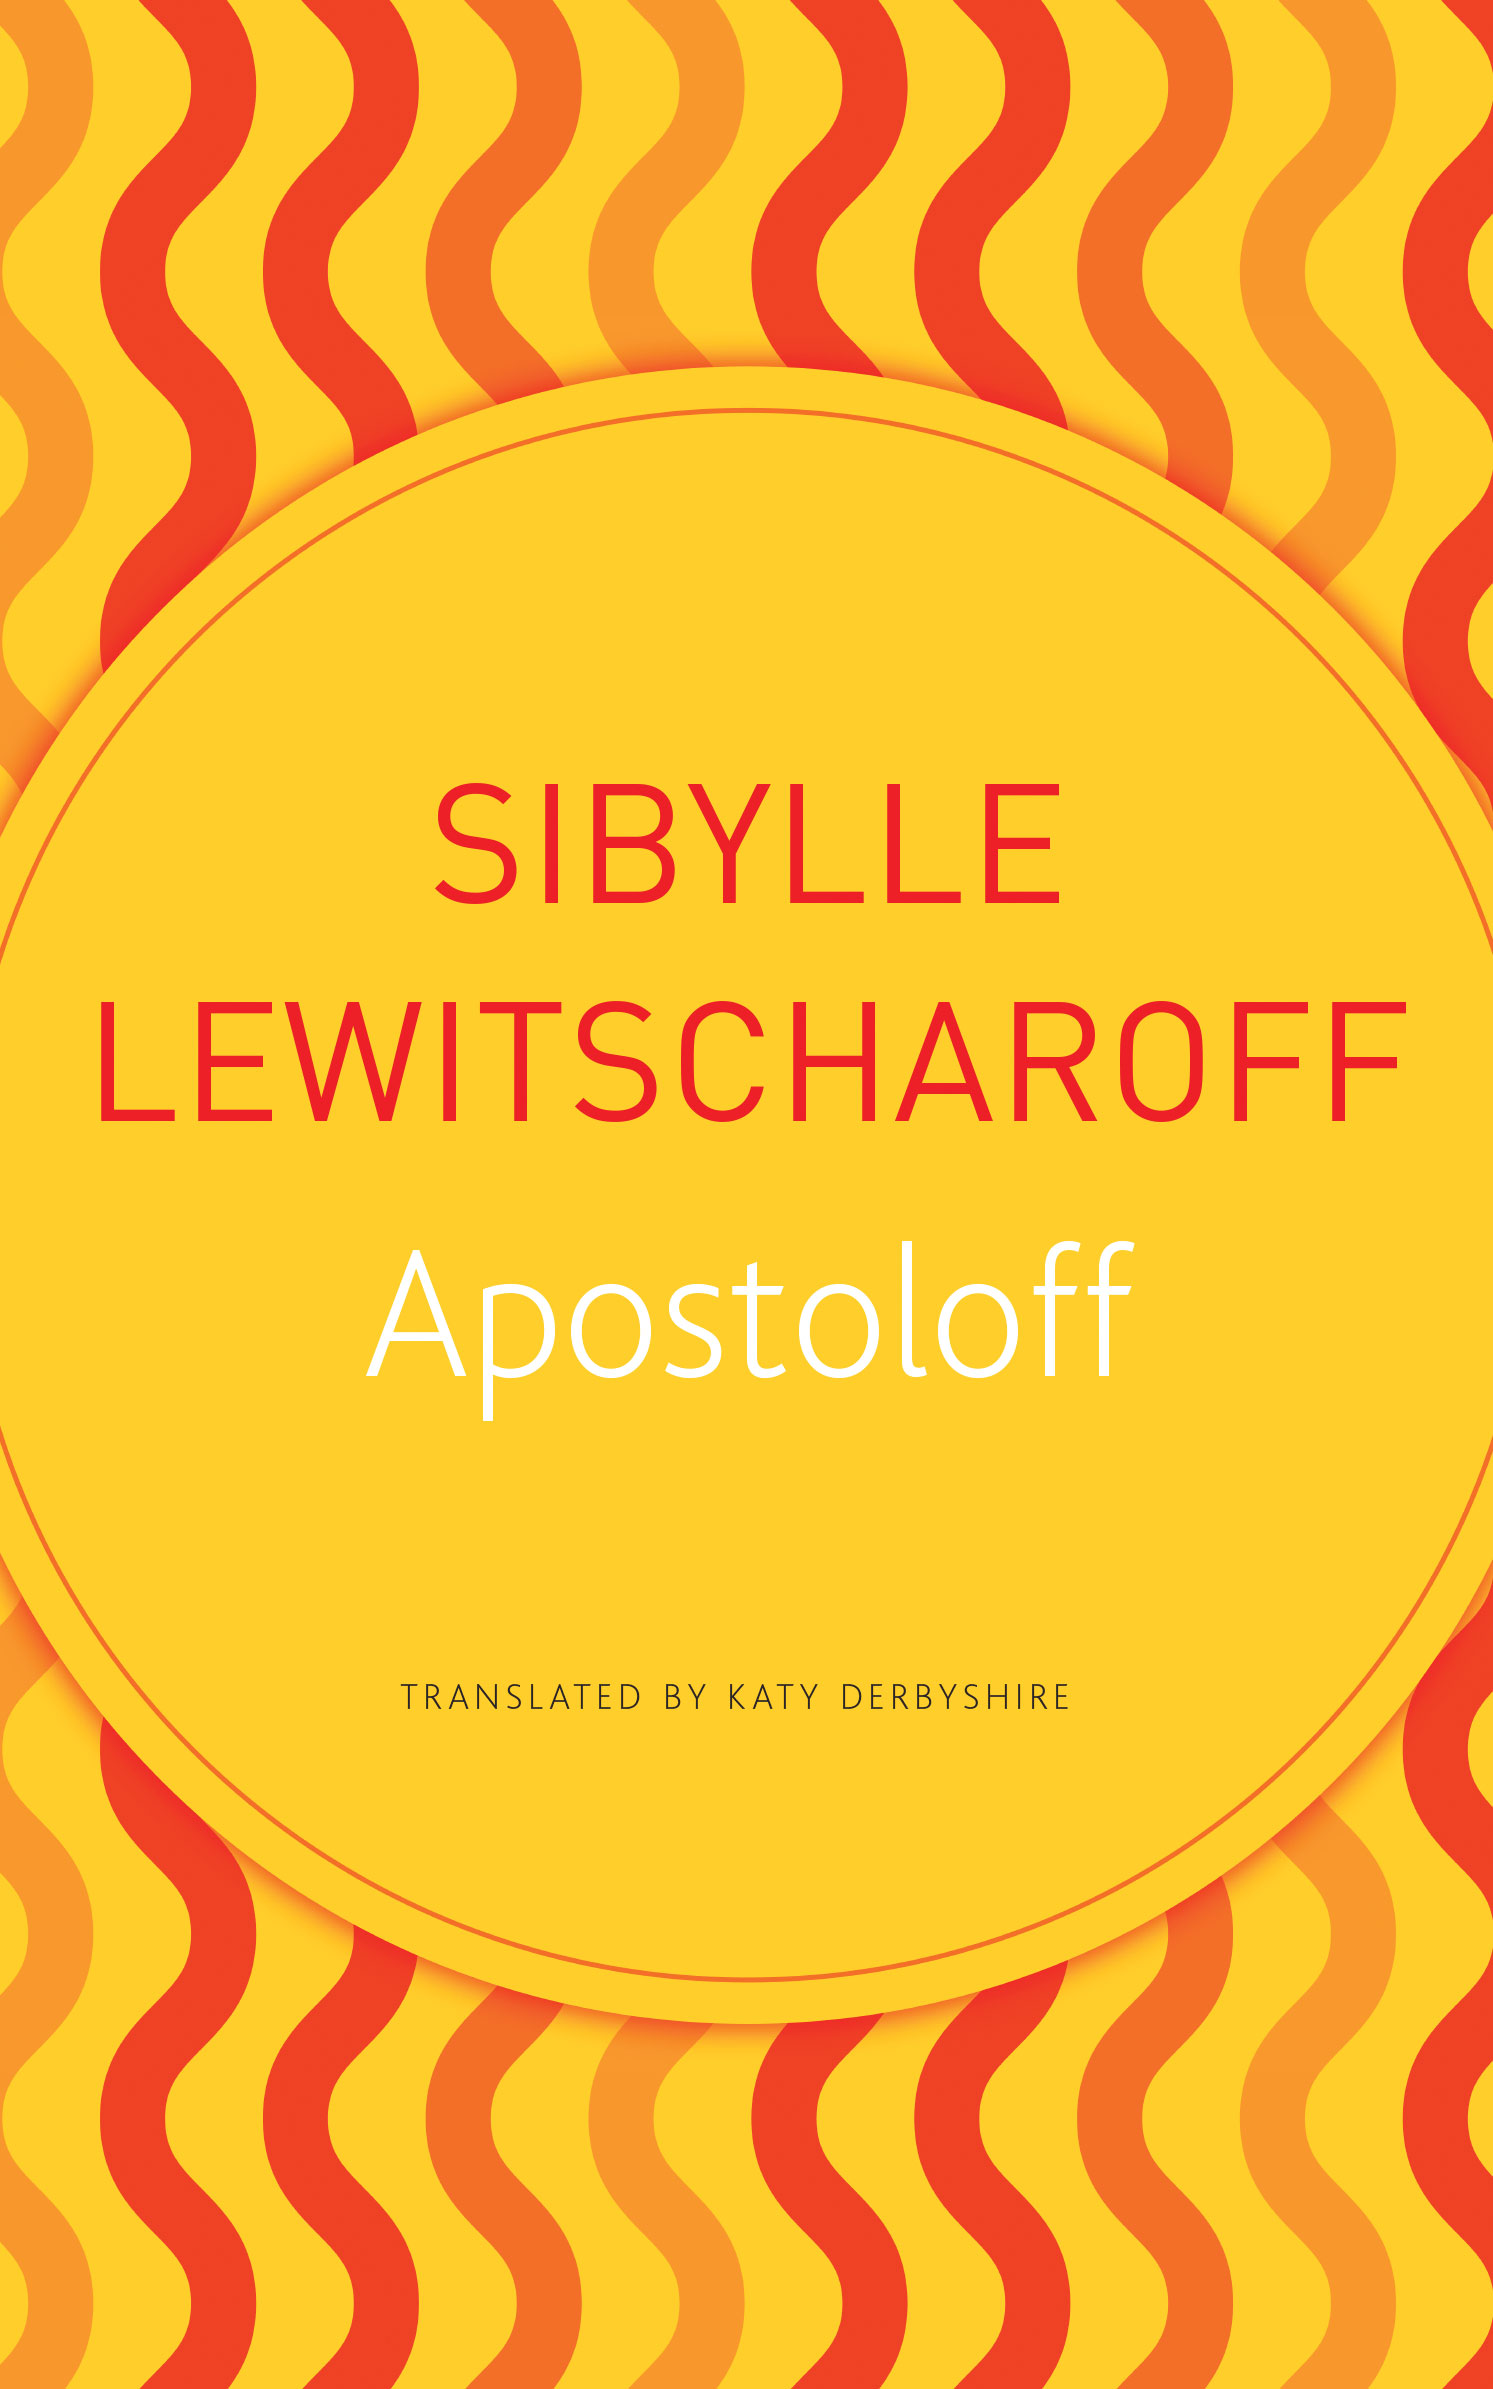 Apostoloff by Sibylle Lewitscharoff | Seagull Books